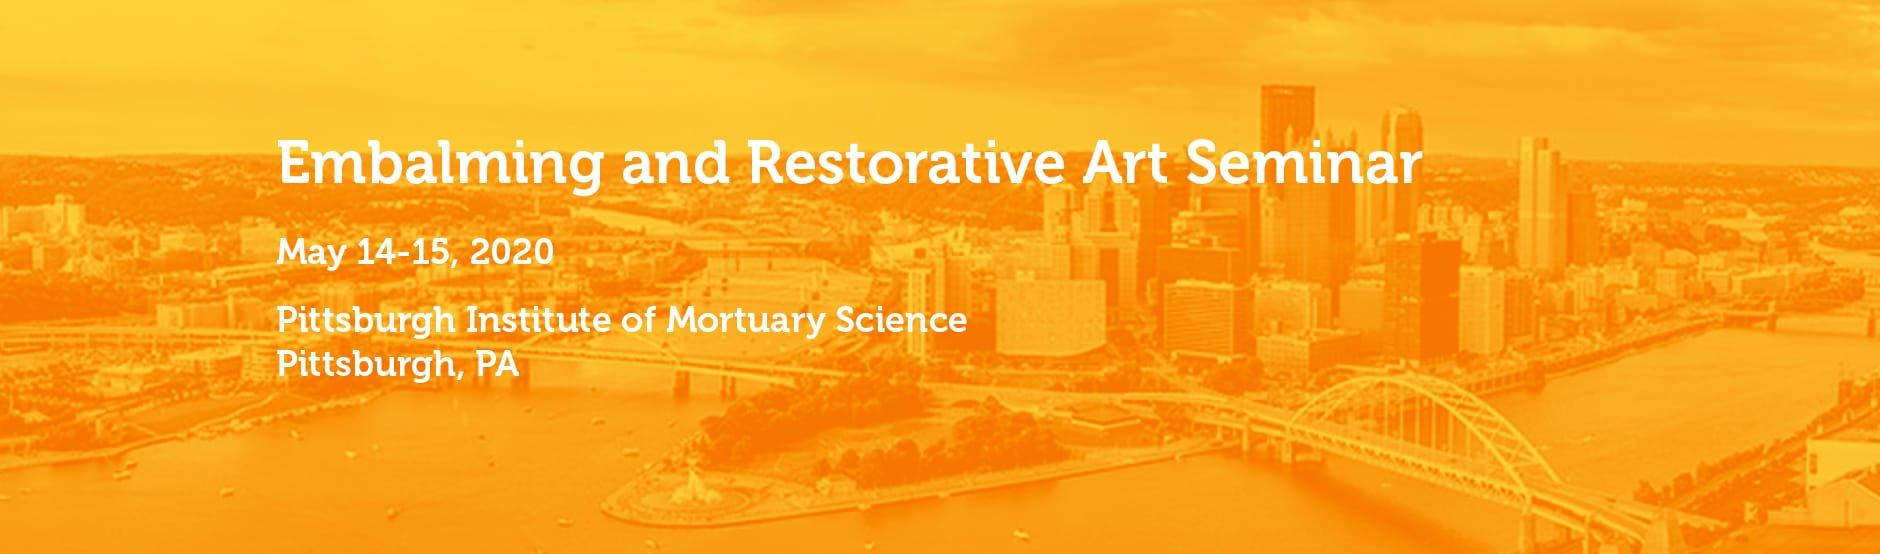 2020 NFDA Embalming & Restorative Art Seminar to Focus on Donor Cases